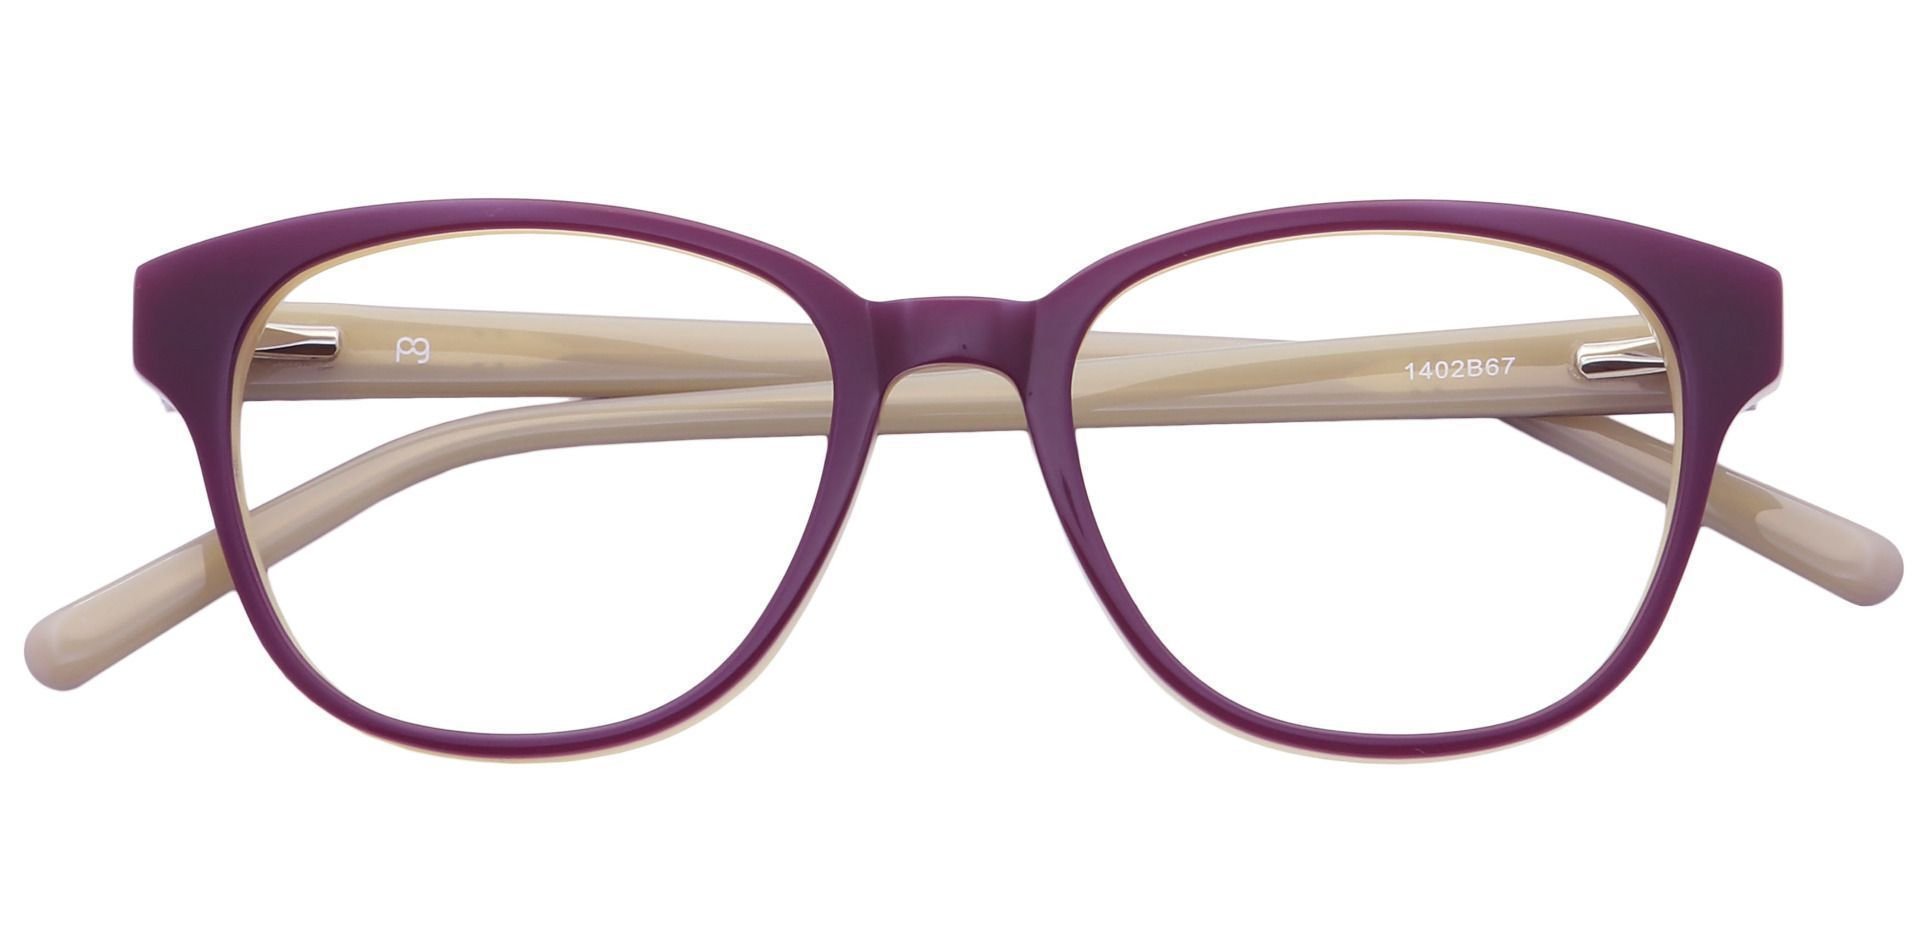 Elan Classic Square Blue Light Blocking Glasses - Purple